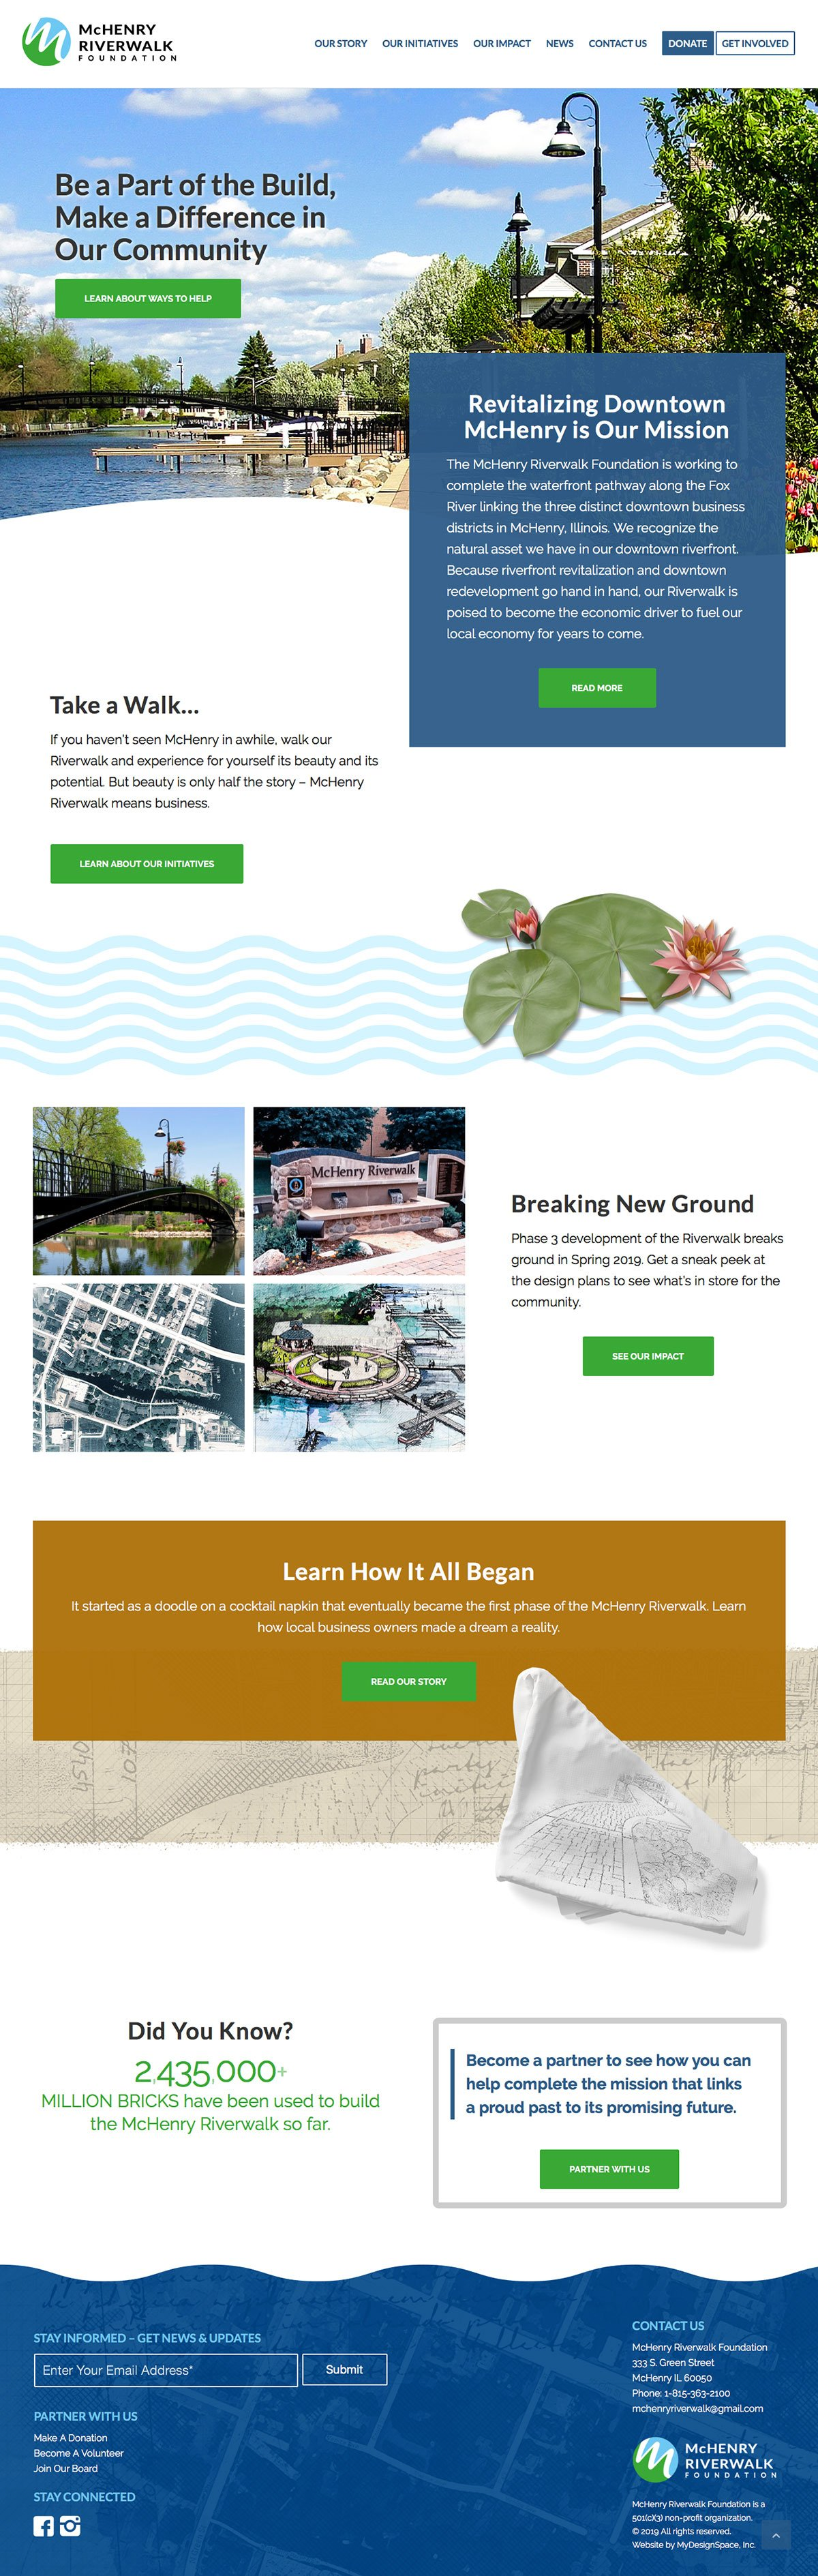 McHenry Riverwalk Foundation Home Page